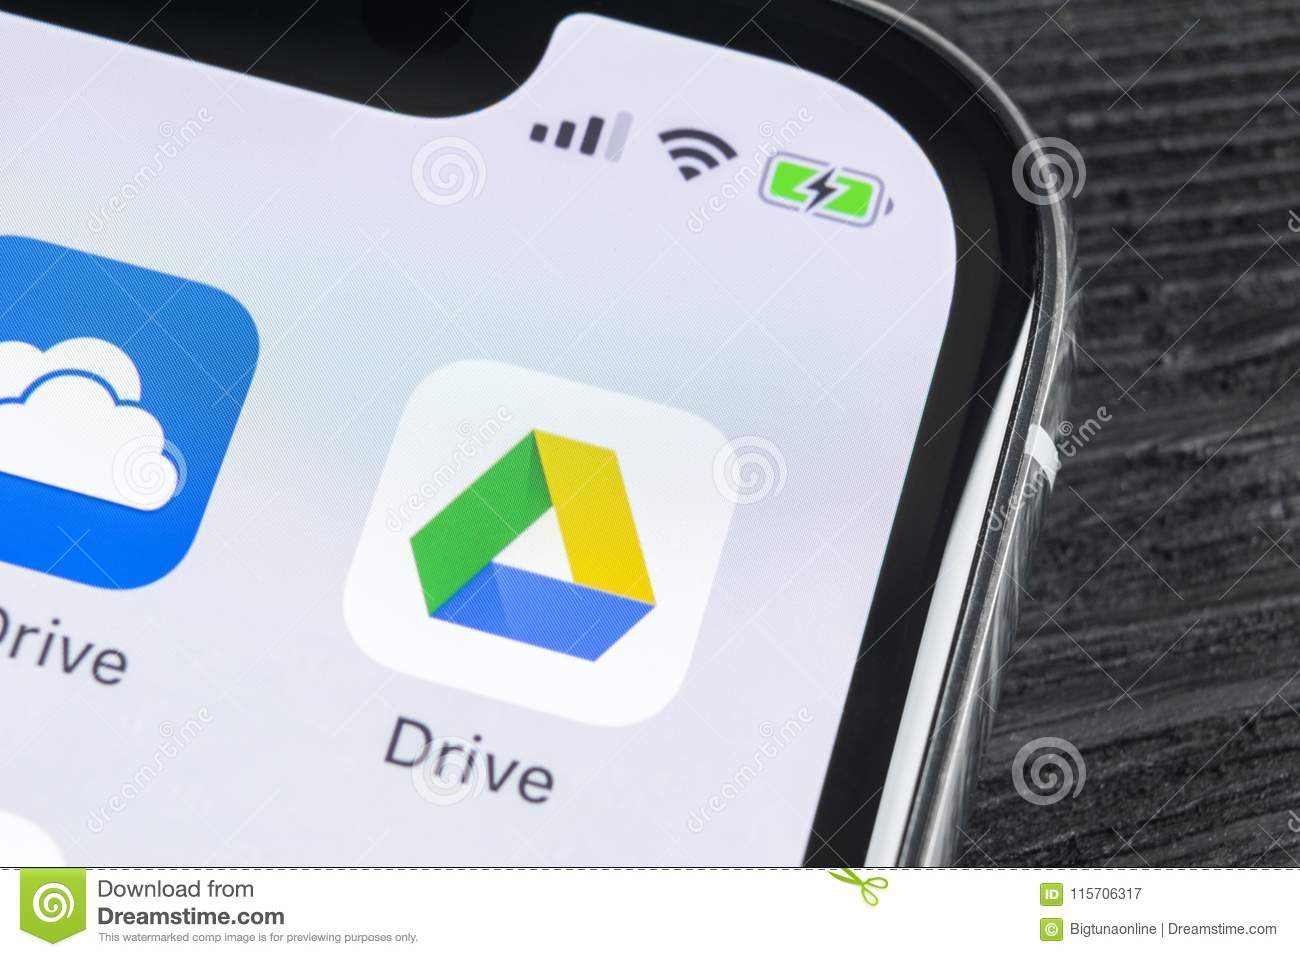 how to download photos from google drive on iphone